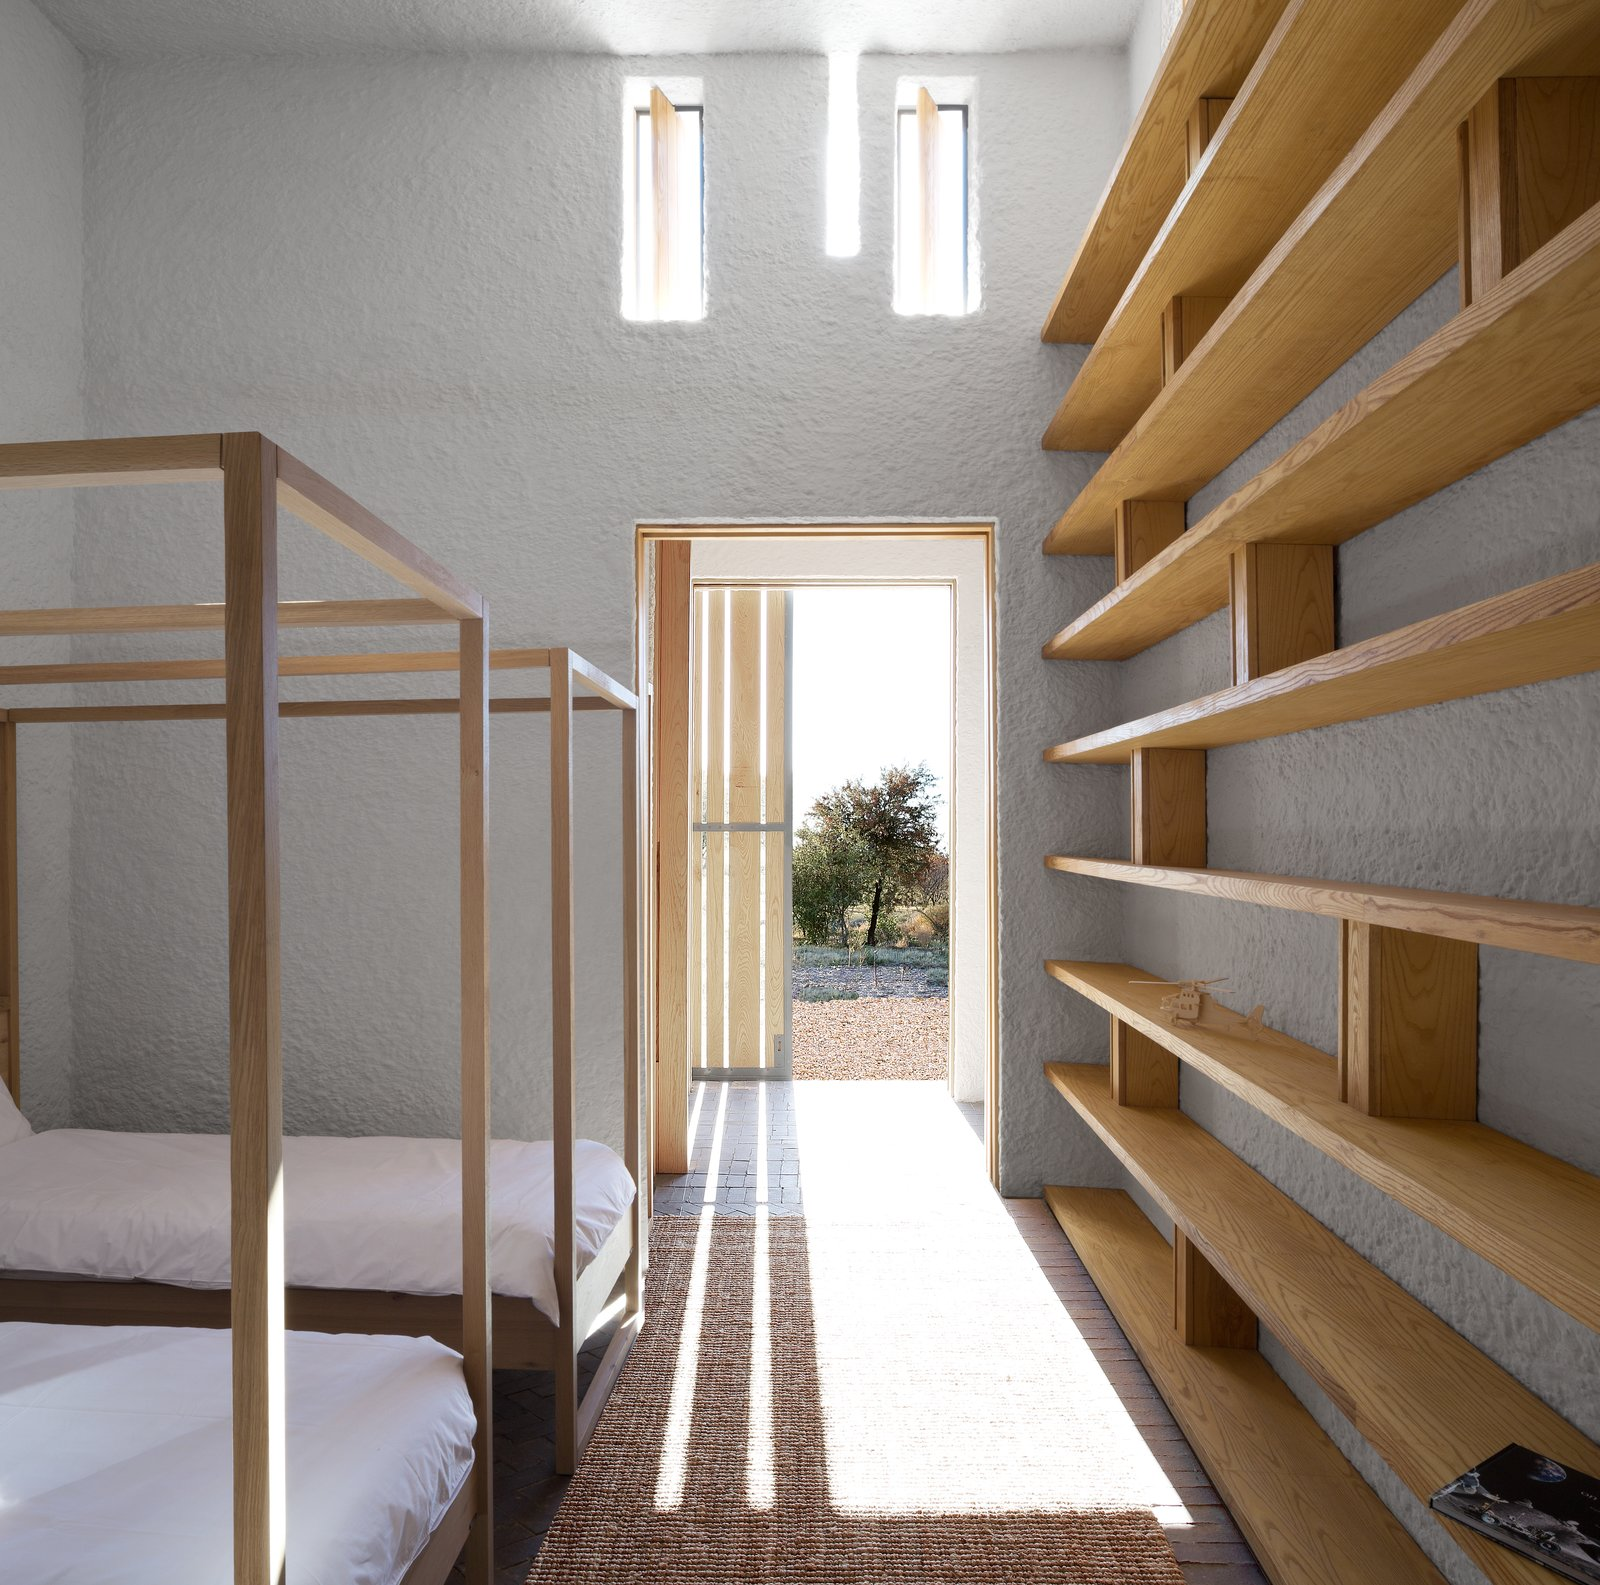 Bedroom and Bunks Openstudio worked with local builders, using a palette of regional materials: patterned brick, white ceramic tiles, and roughcast lime-washed plaster.  Photo 4 of 7 in A Minimalist Retreat at the Edge of South Africa's Karoo Desert